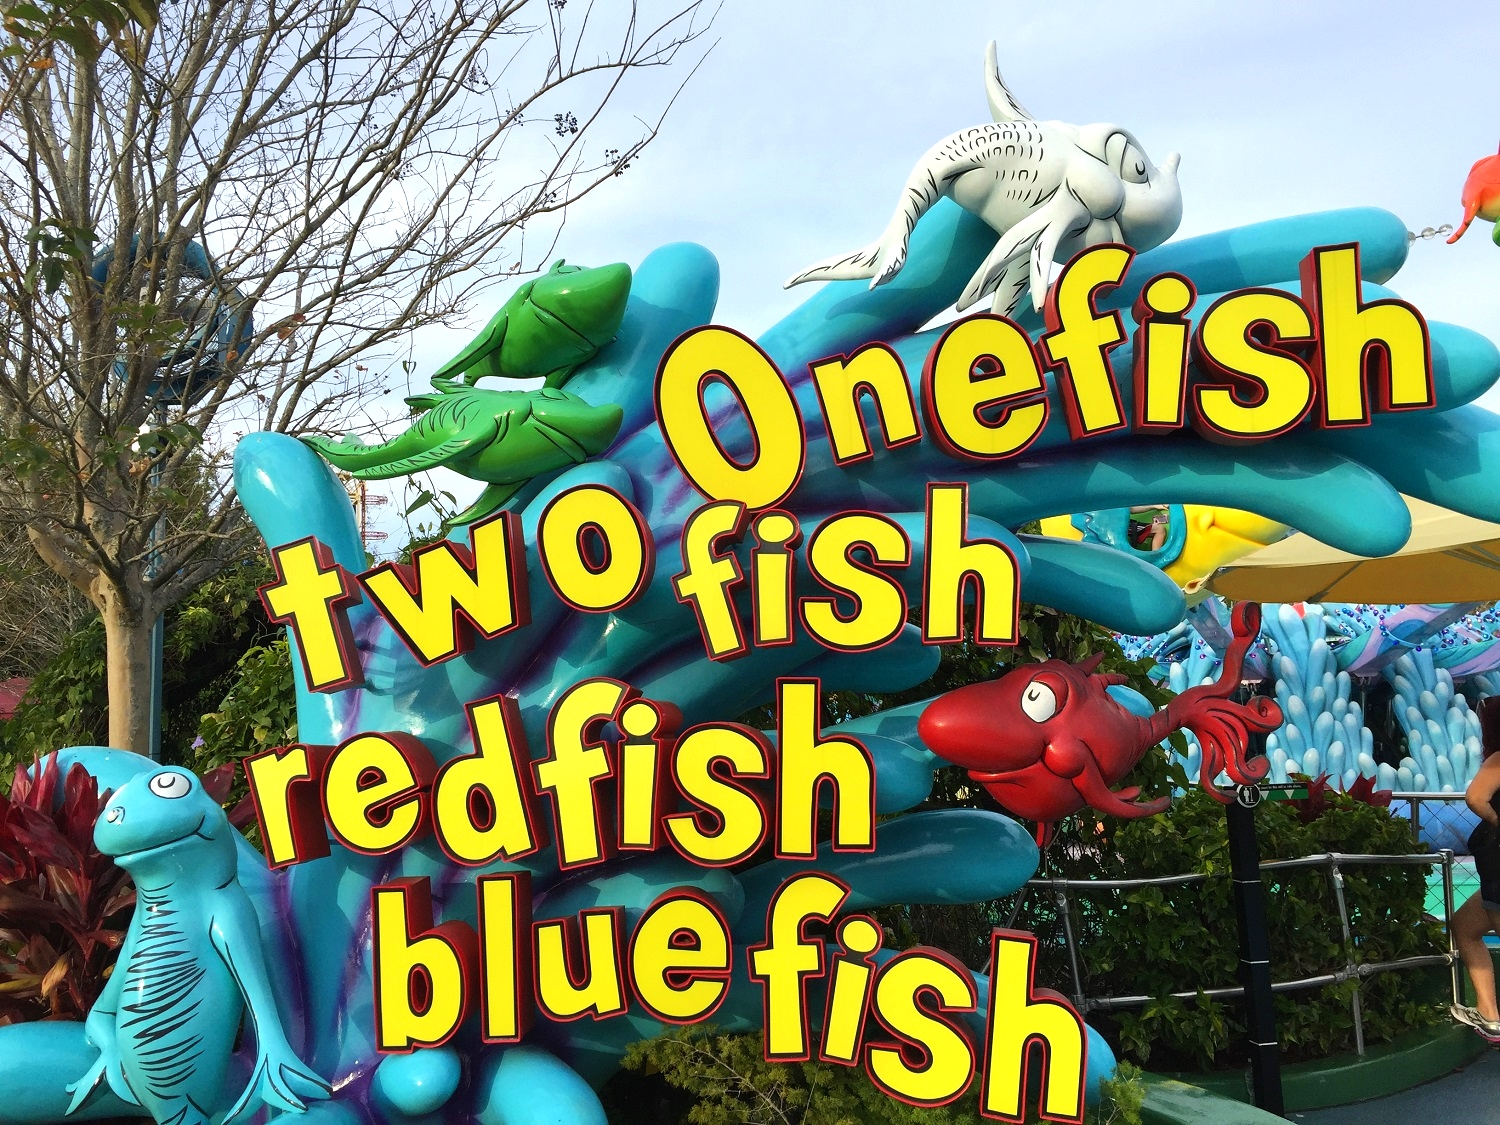 The sign at the ride entrance of One Fish, Two Fish, Red Fish, Blue Fish in Seuss Landing.